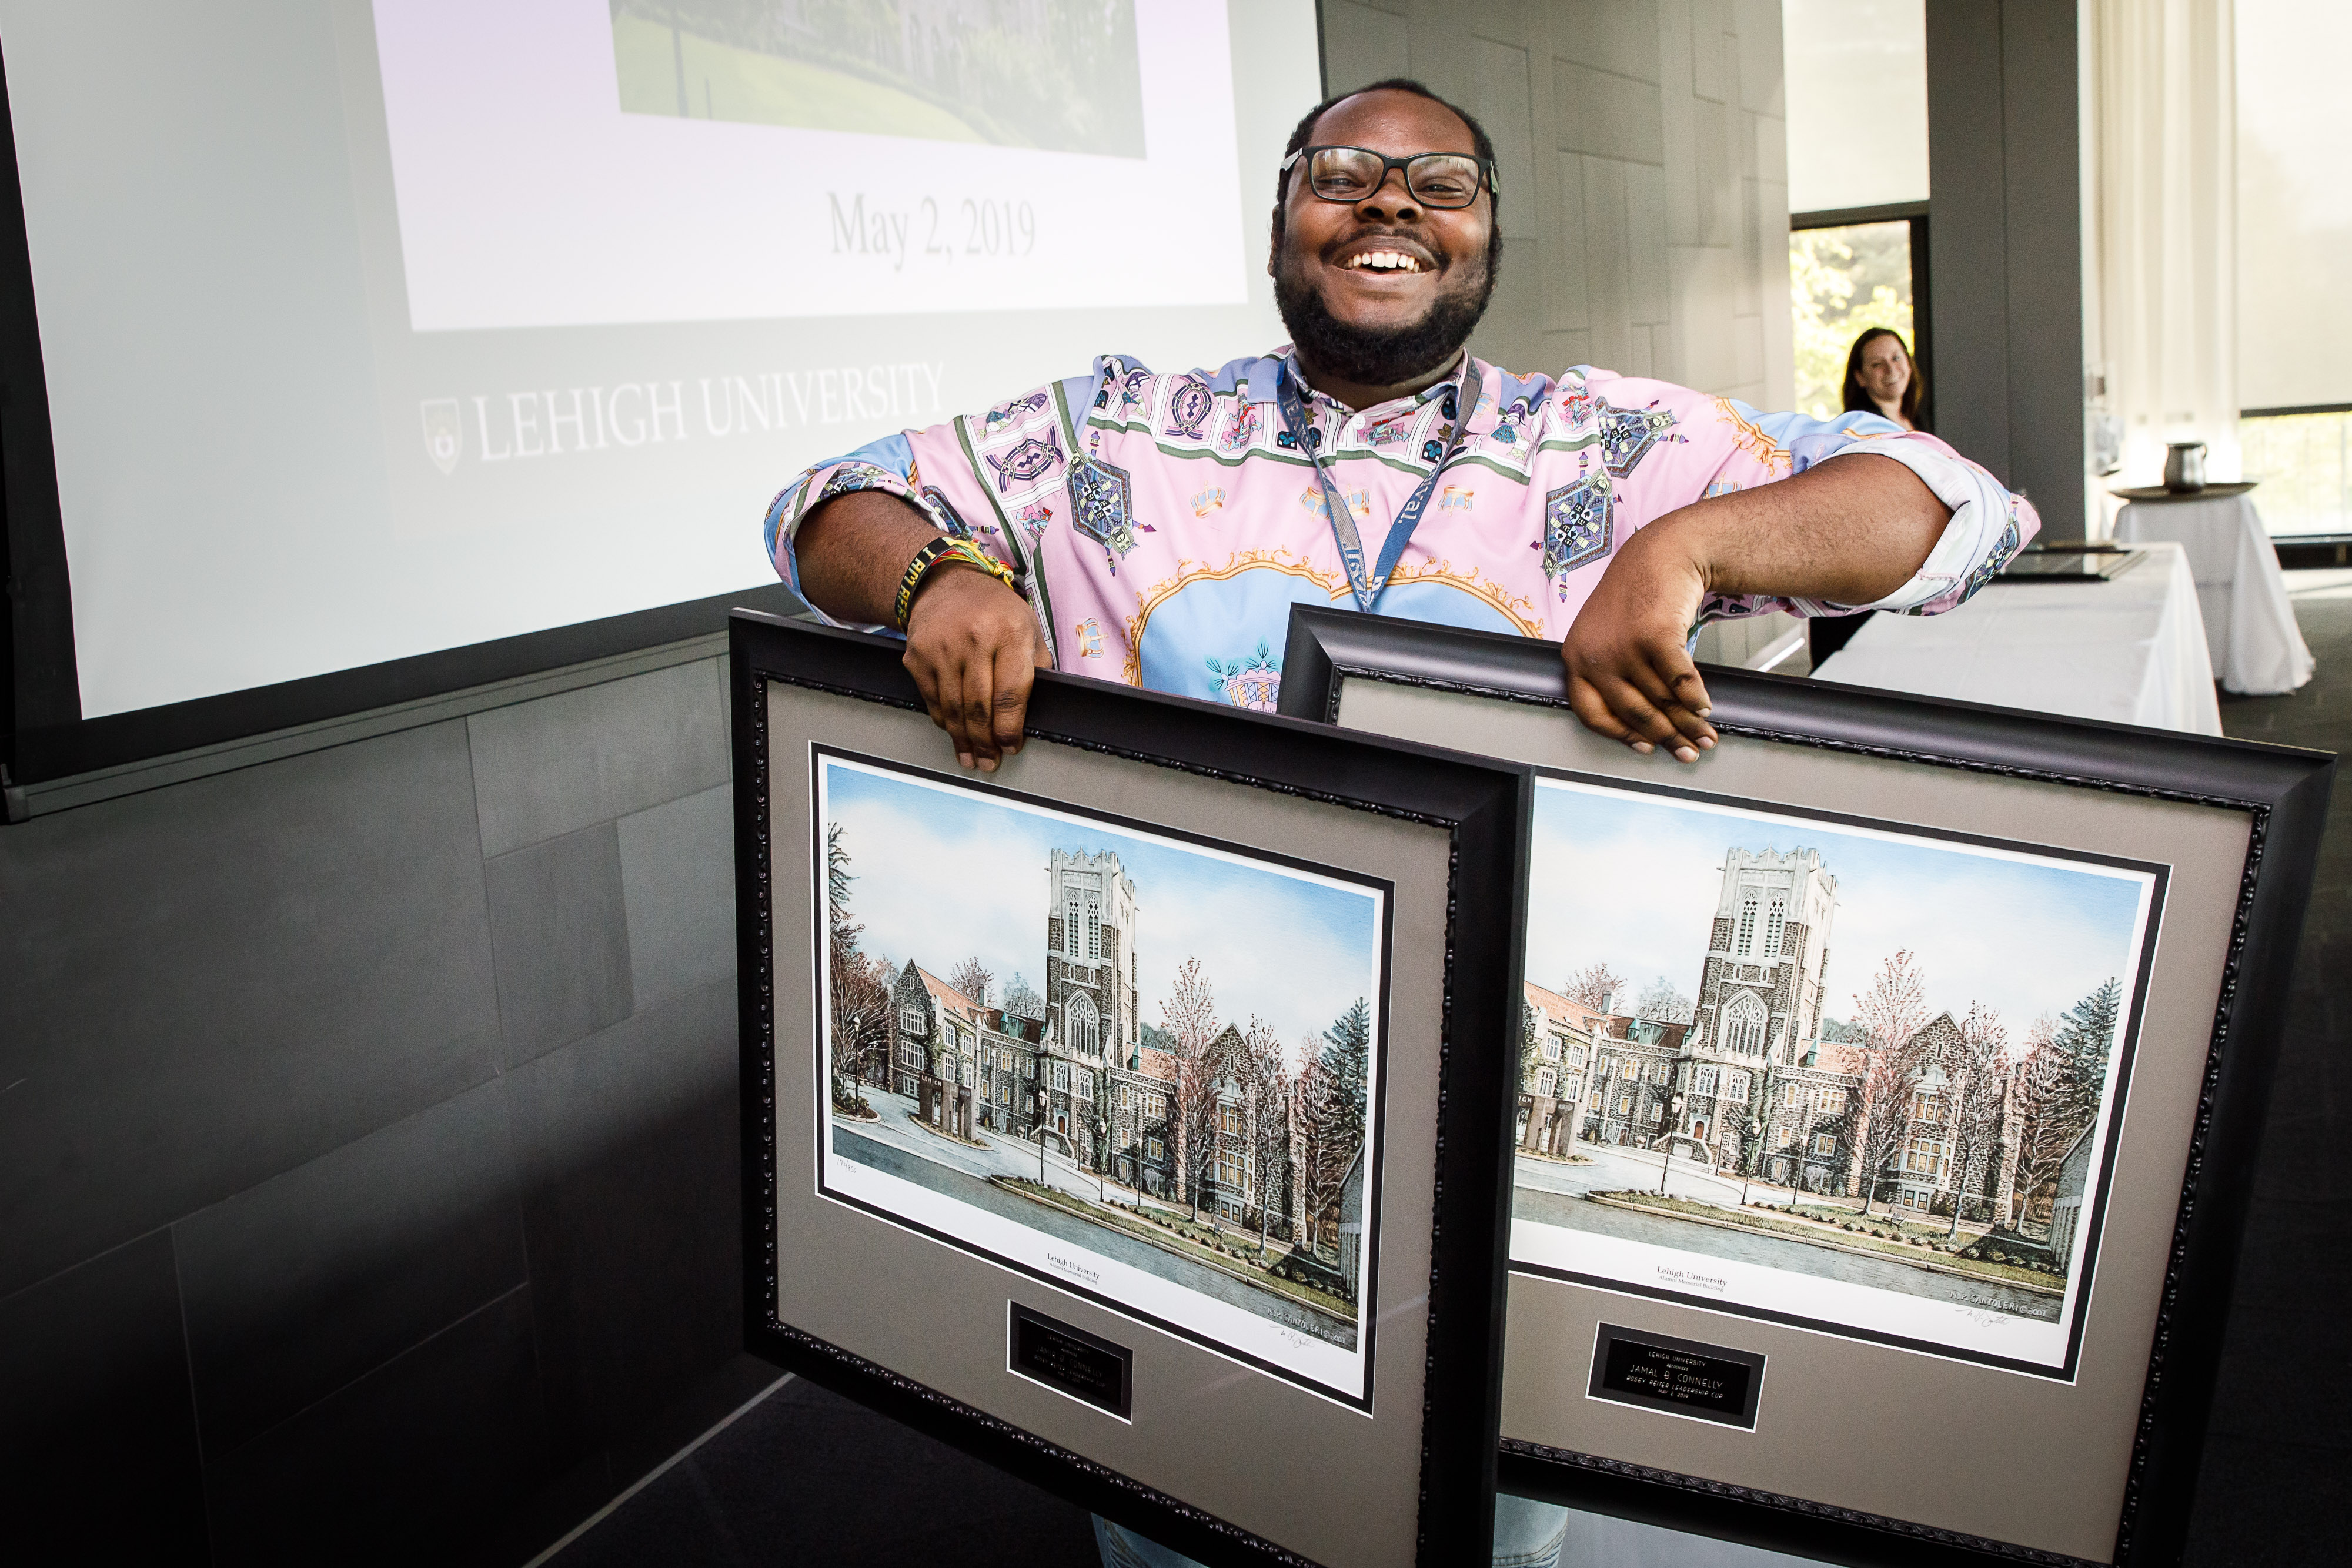 2019 Winner with framed photo awards